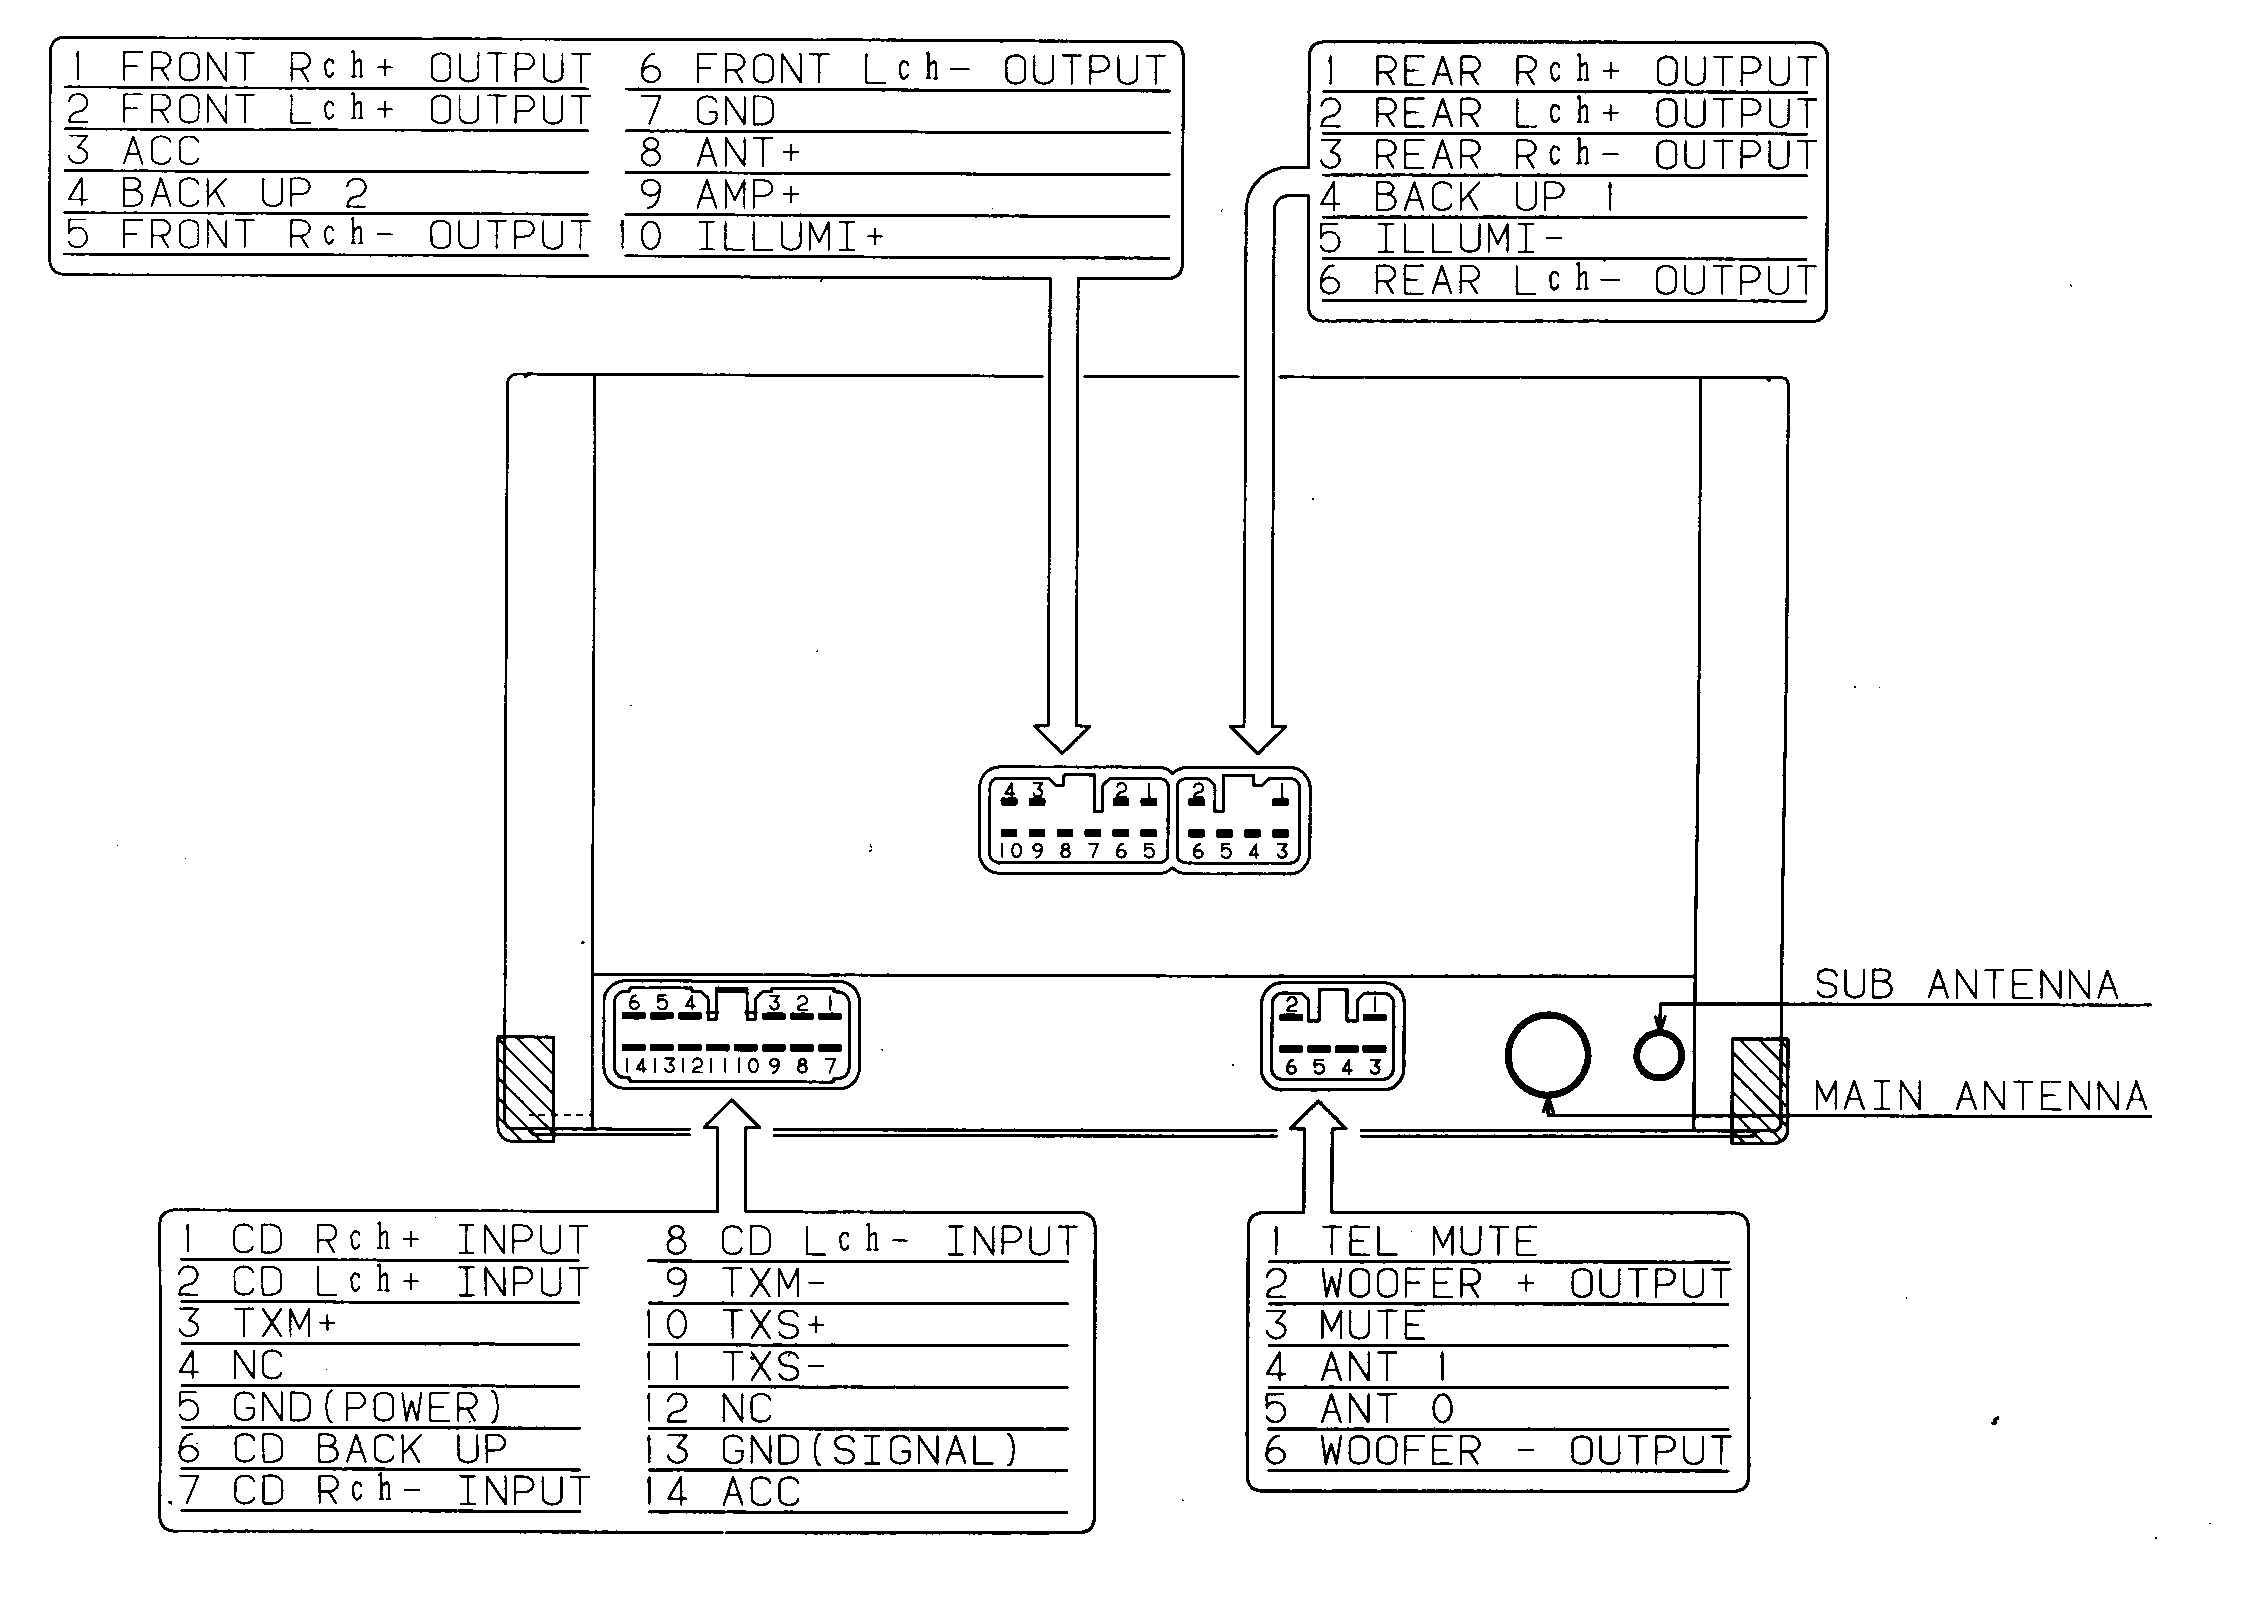 Lexus Car Radio Stereo Audio Wiring Diagram Autoradio Connector Wire Series Speaker Installation Schematic Schema Esquema De Conexiones Stecker Konektor Connecteur Cable